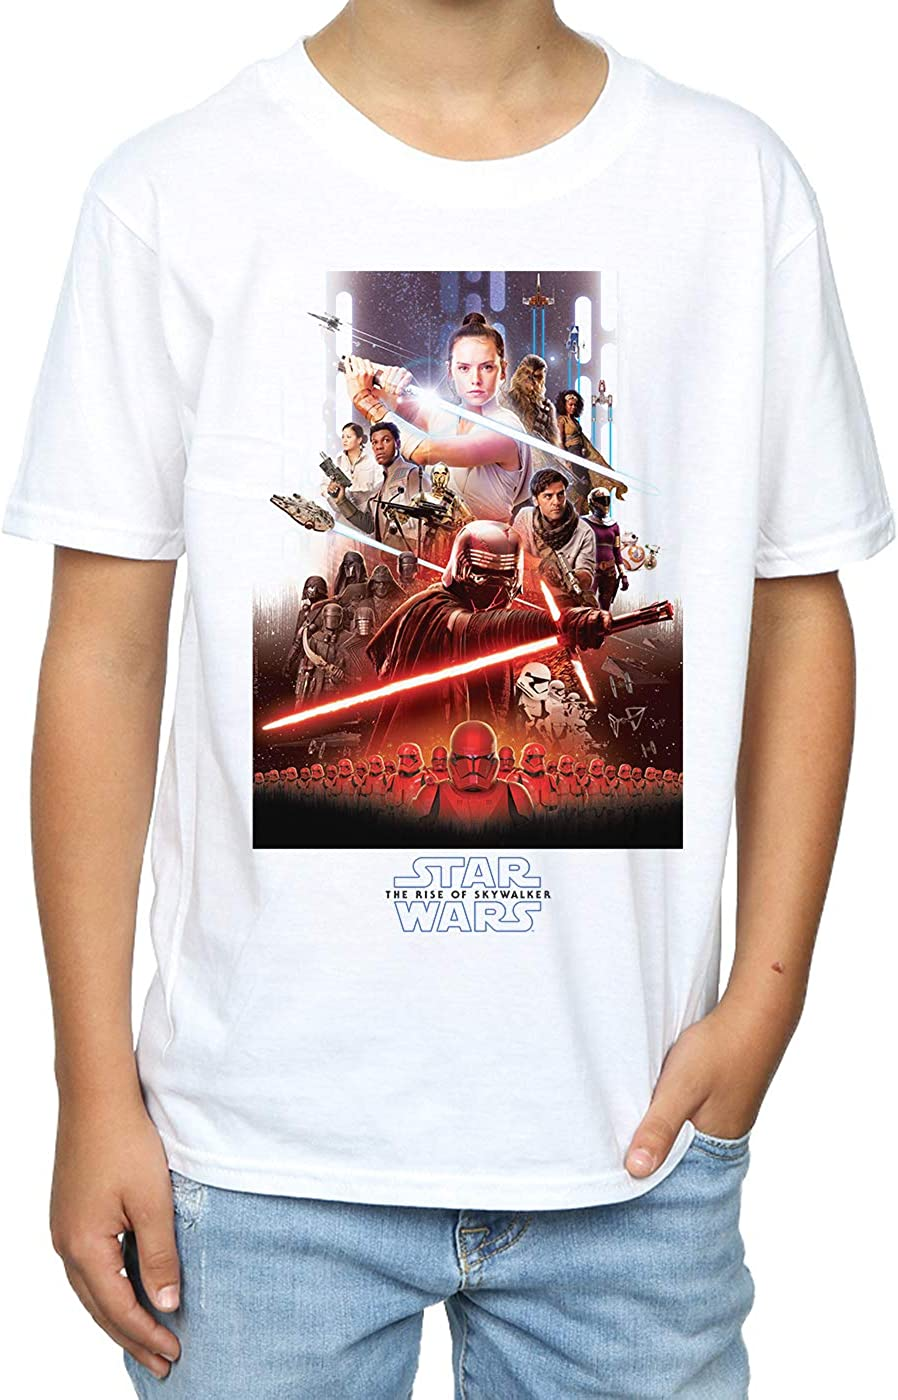 Star Wars Boys The Rise of Skywalker Poster T-Shirt White 5-6 Years